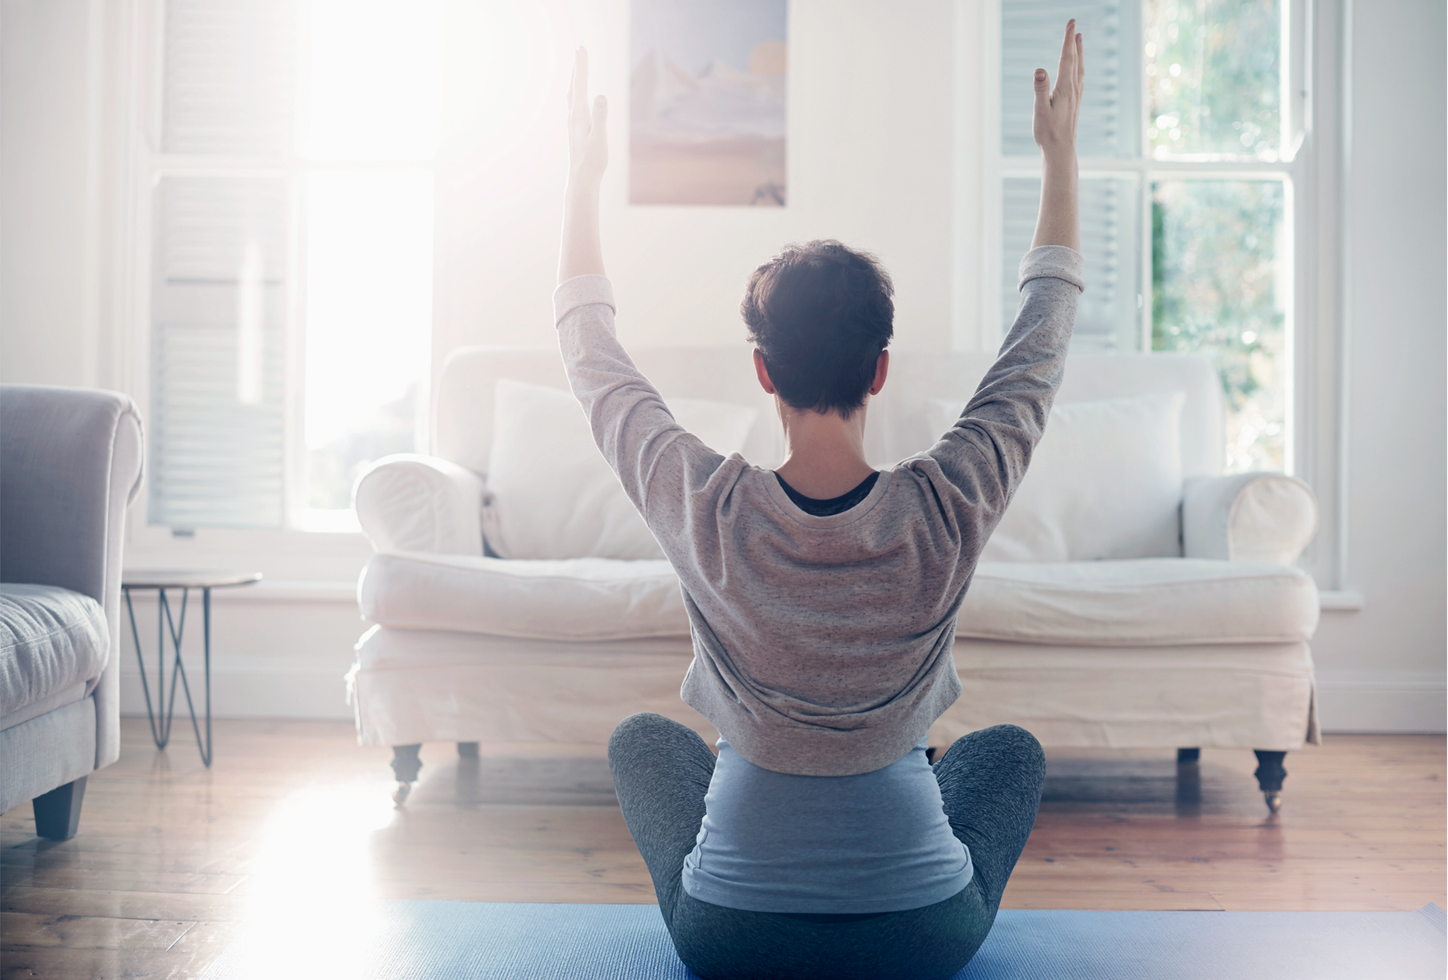 The picture shows a woman at home doing Yoga